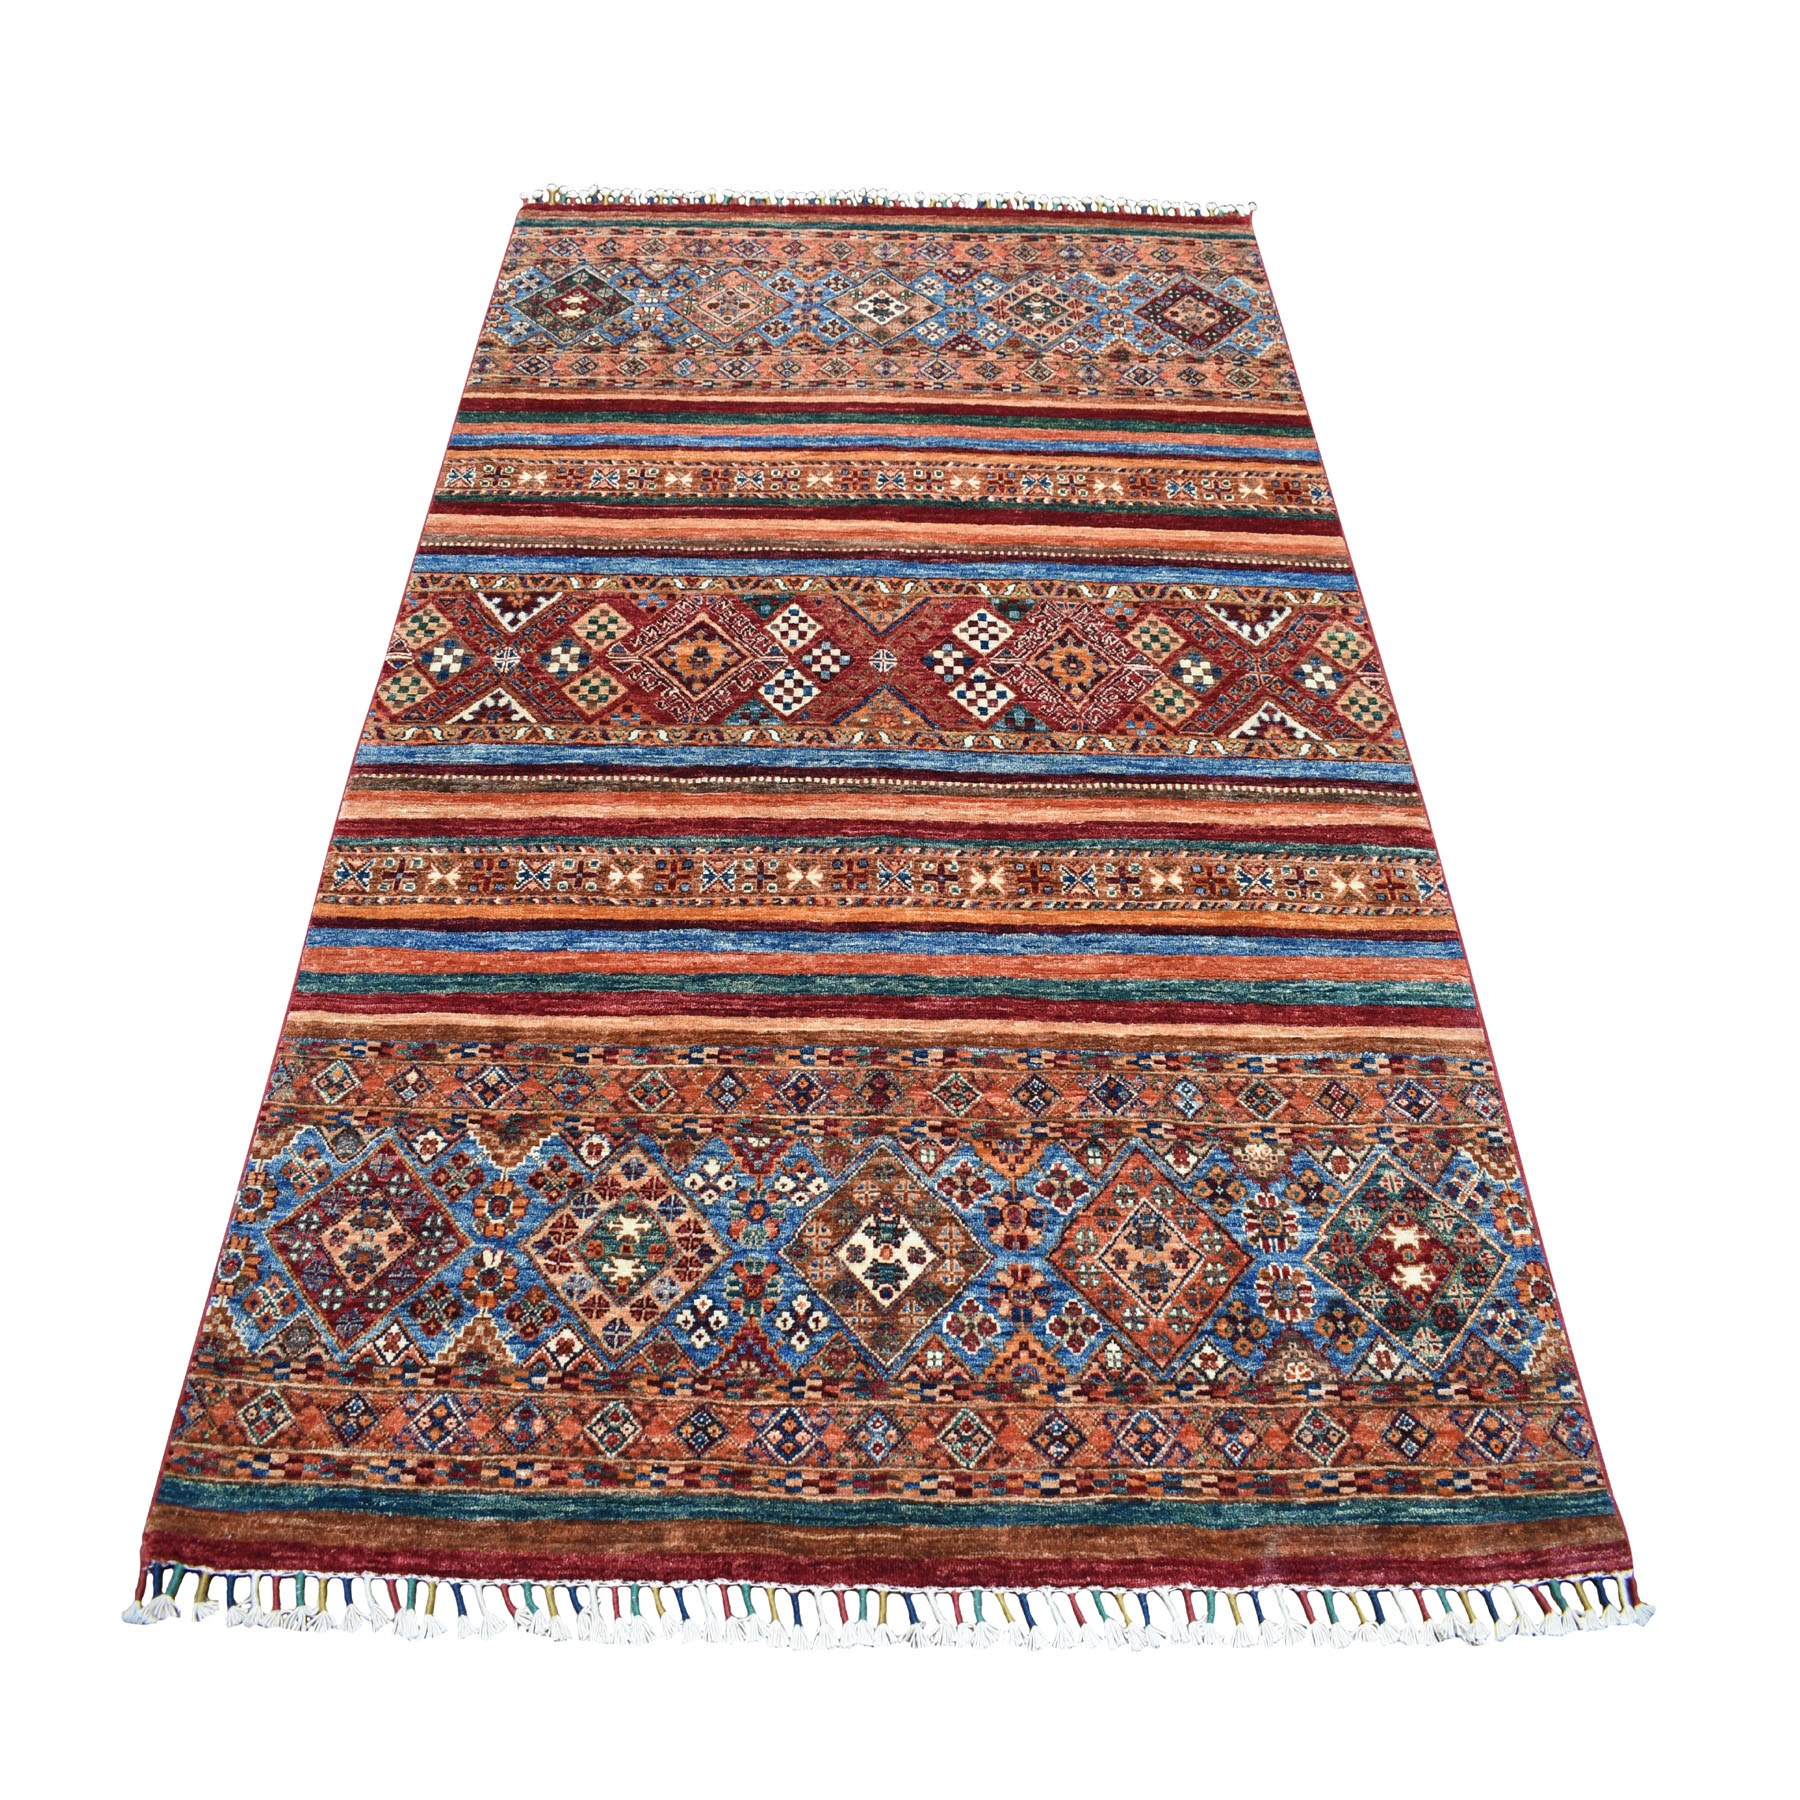 "5'x7'2"" Khorjin Design Colorful Super Kazak Pure Wool Hand Knotted Oriental Rug 52318"